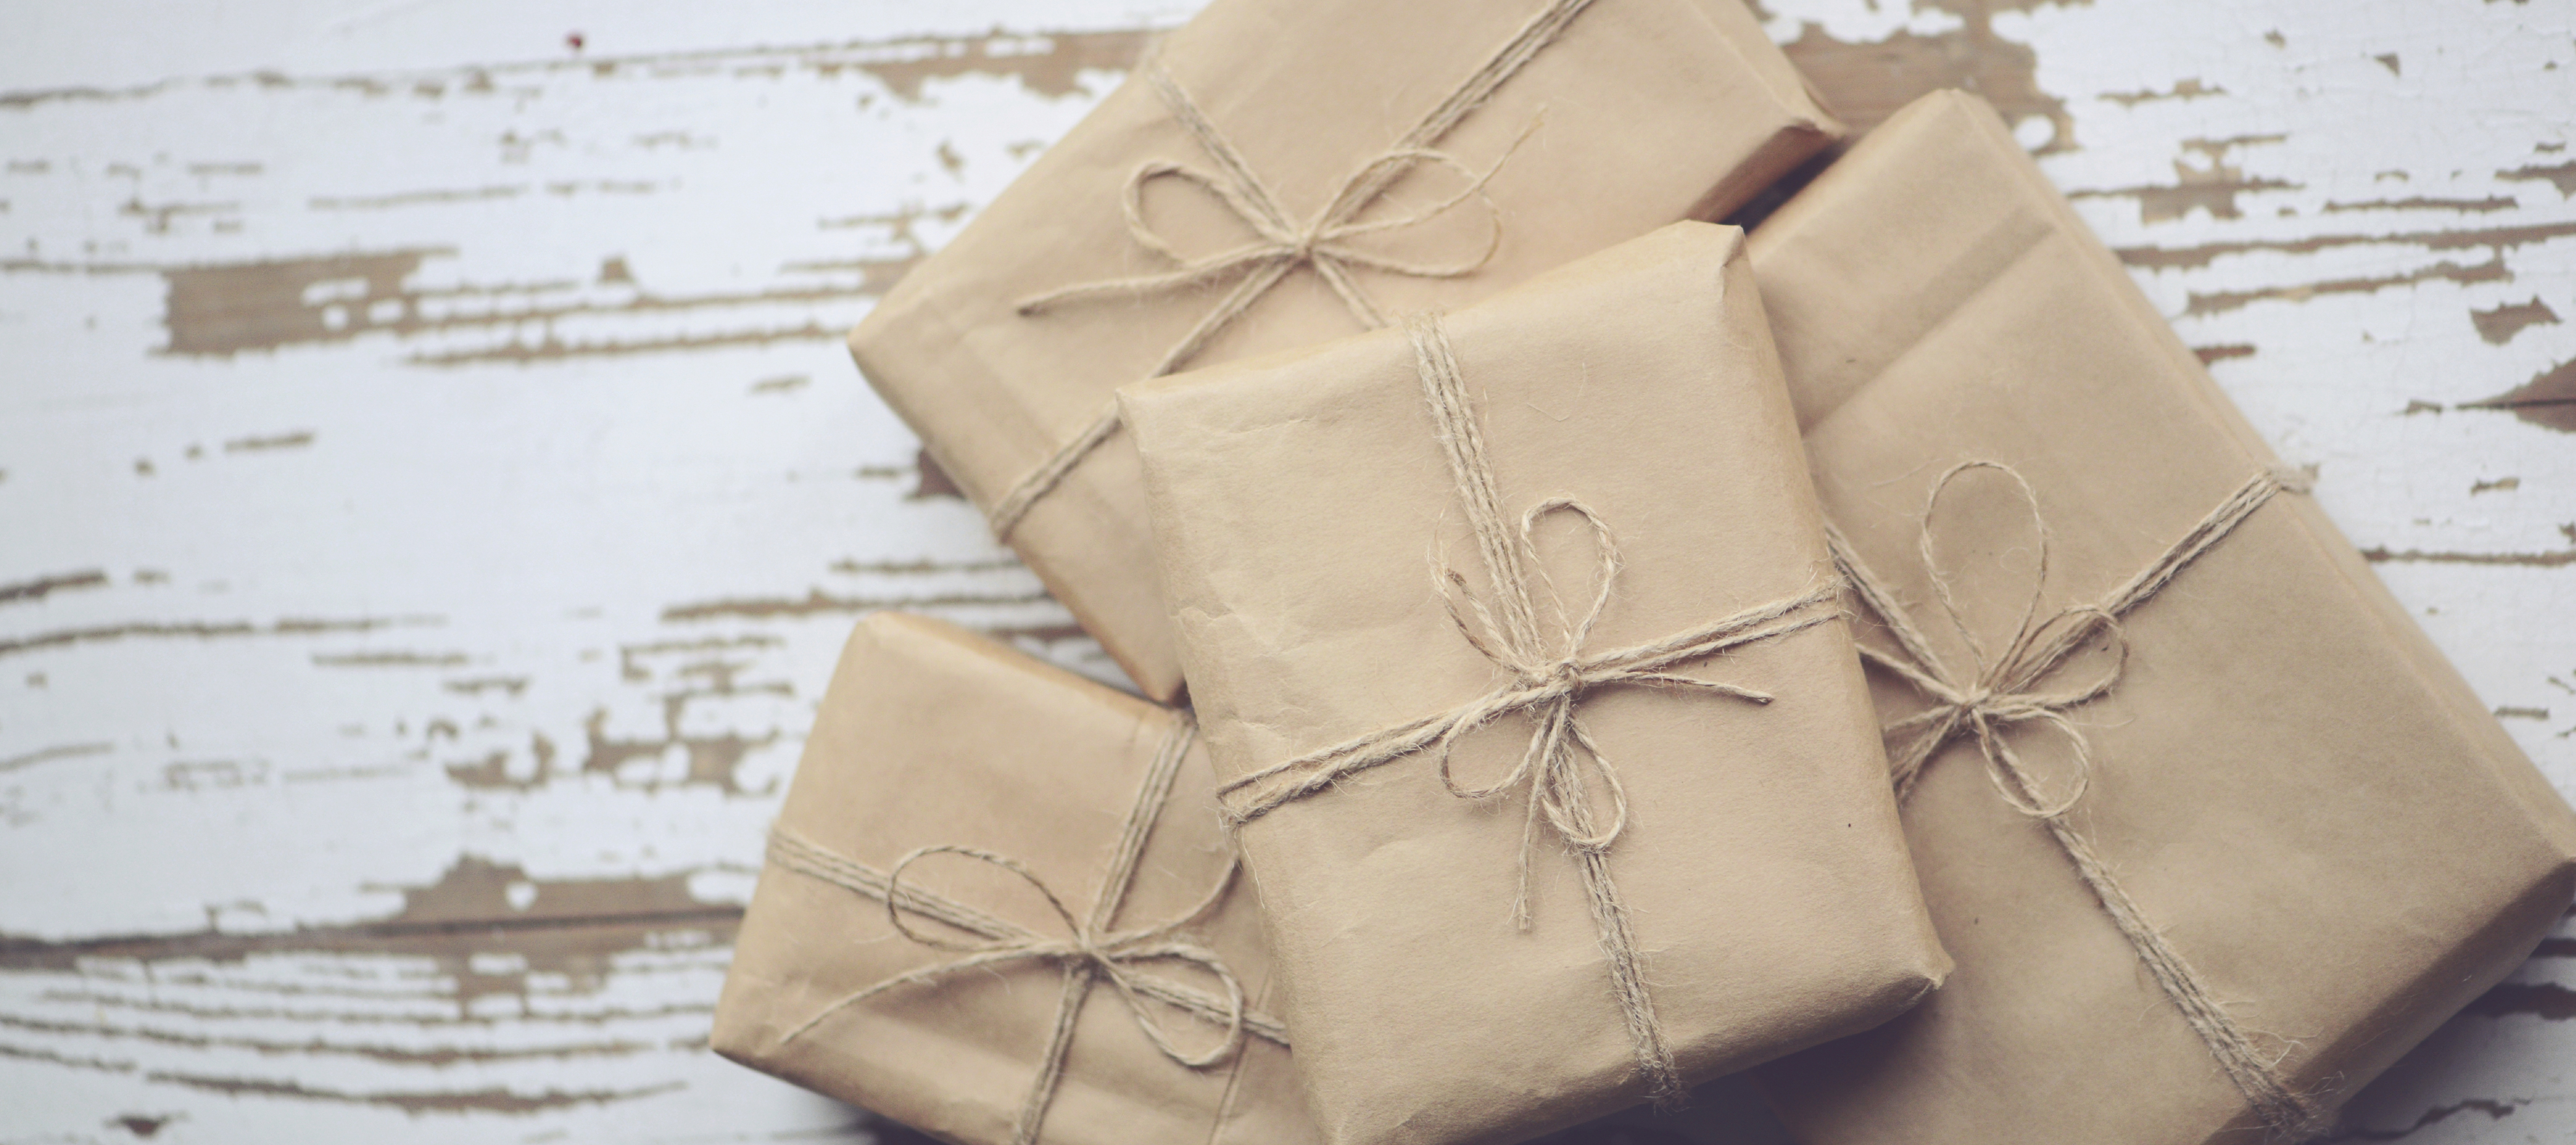 Packages wrapped in brown paper with jute bows